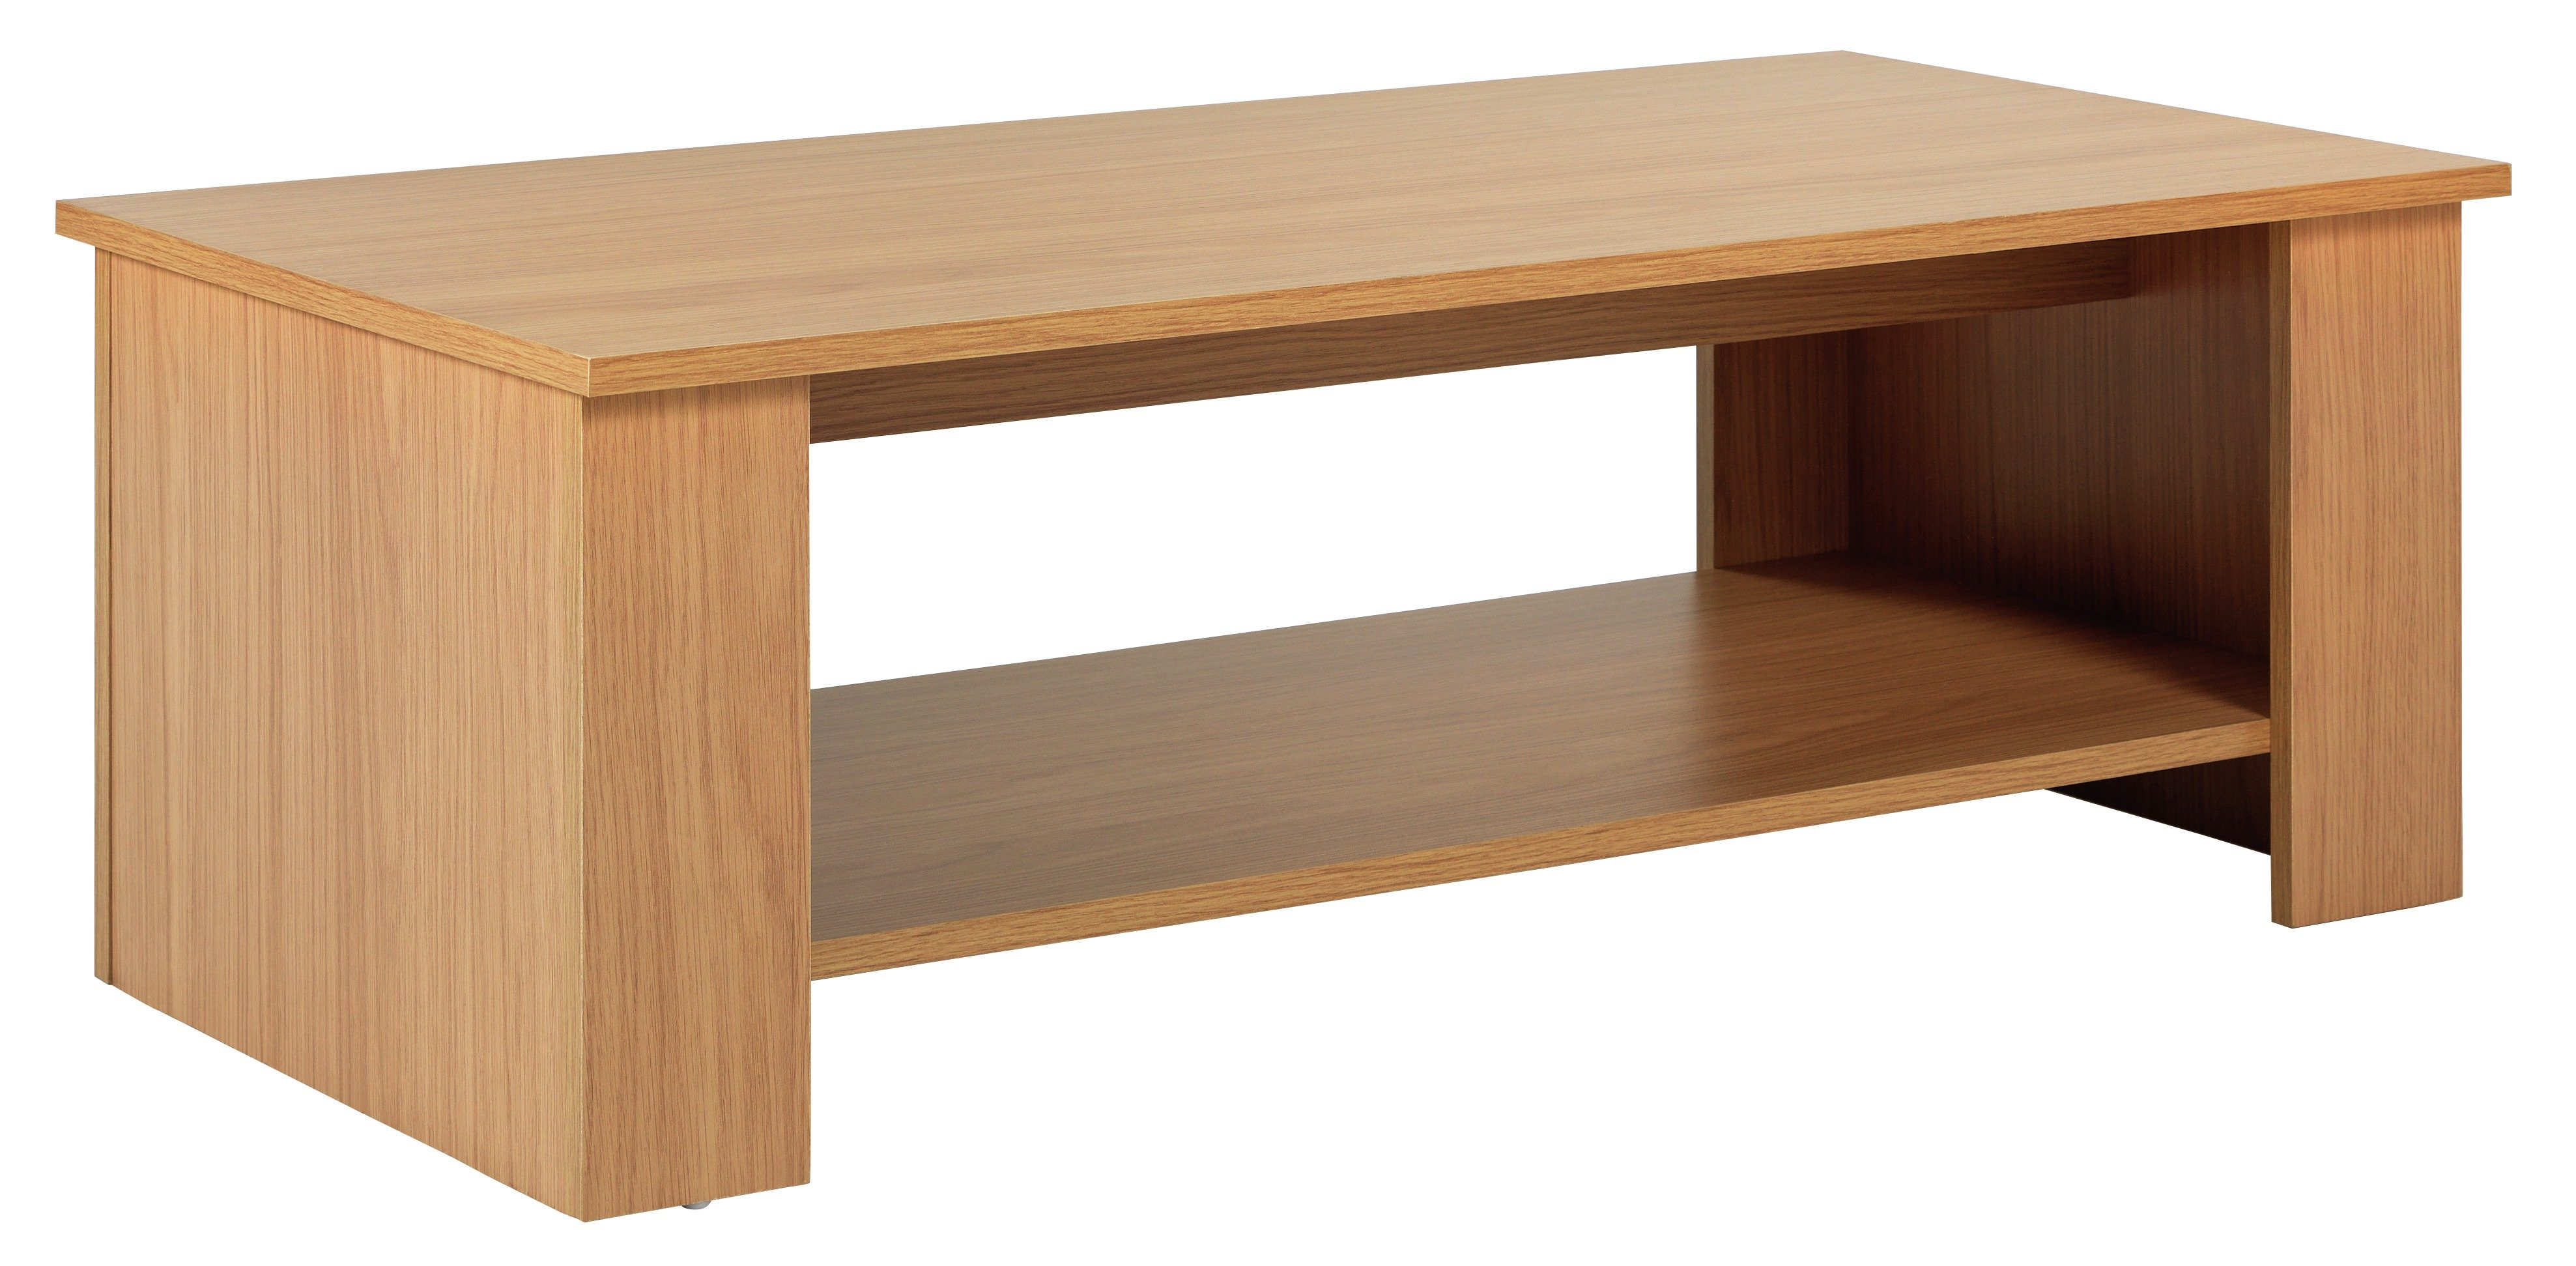 Image of HOME Hamilton Coffee Table - Oak Effect